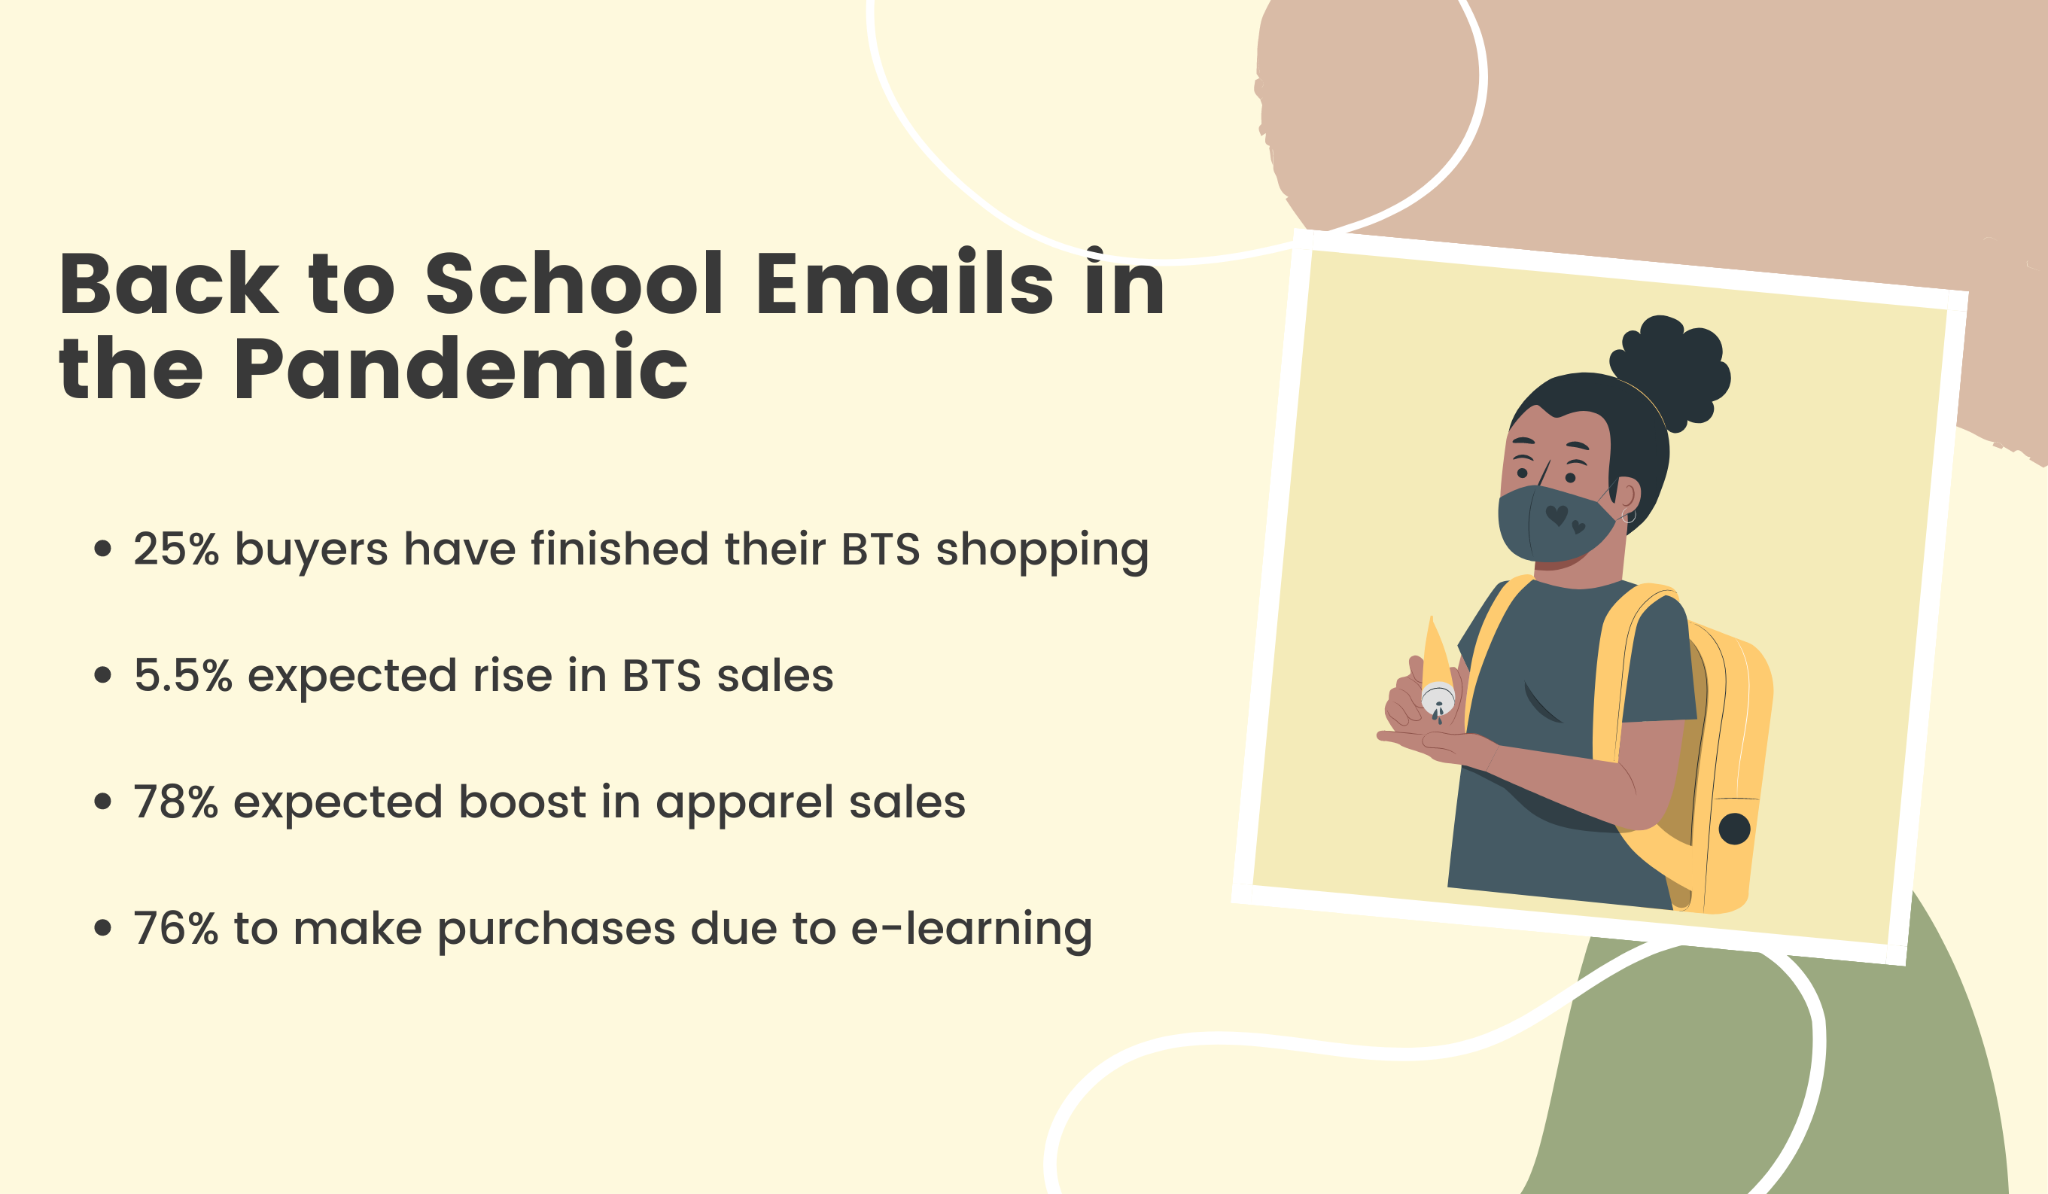 Should you send back to school emails in the pandemic?